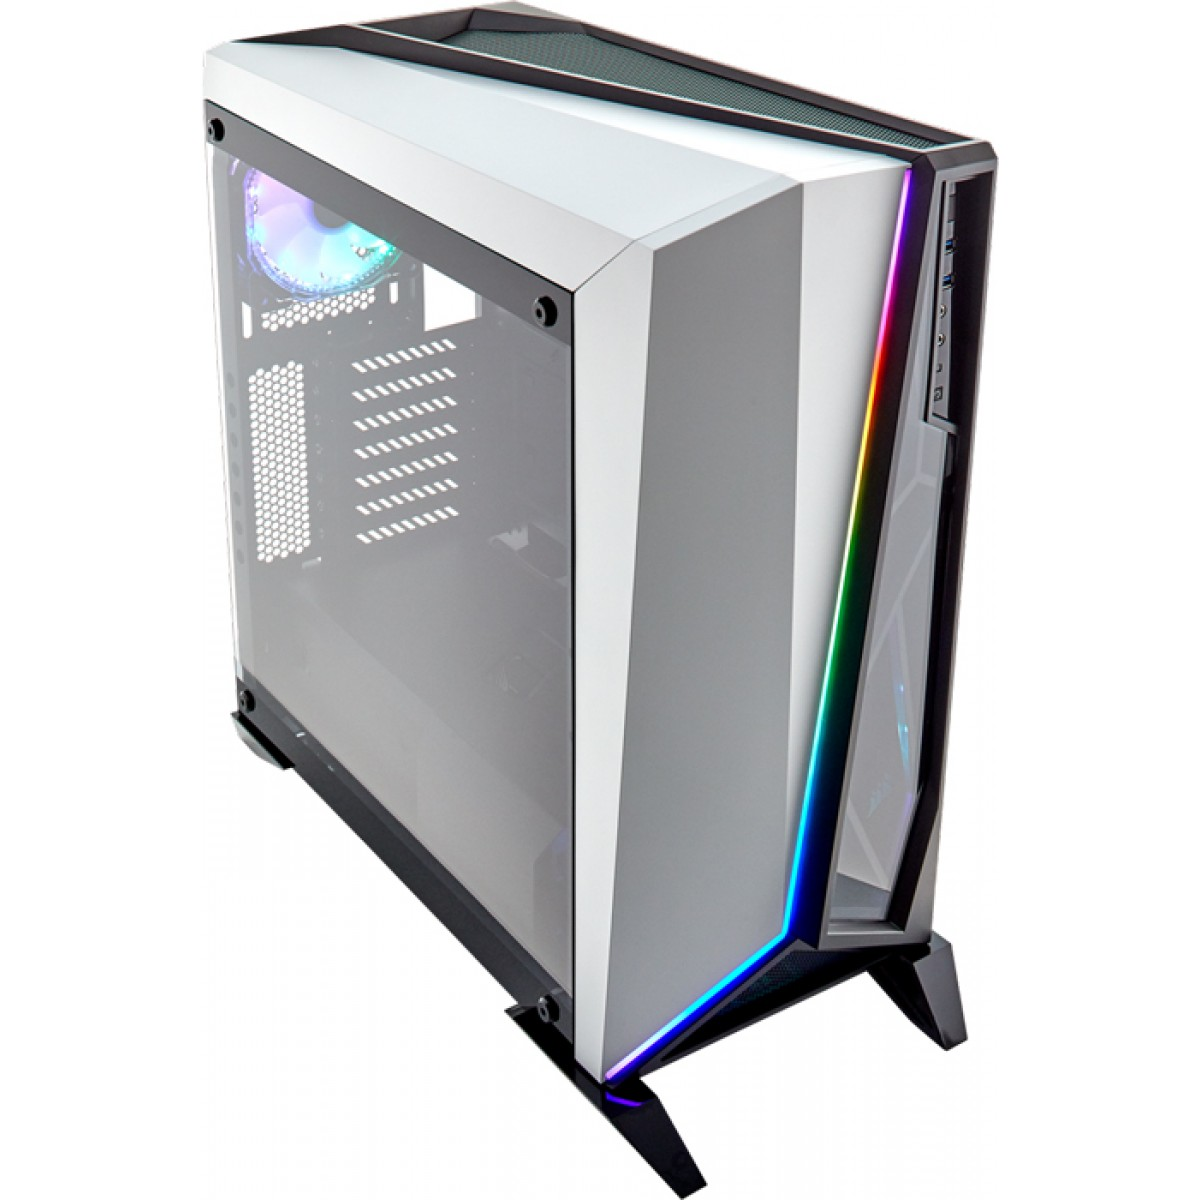 Gabinete Gamer Corsair Carbide Spec-Omega RGB, Mid Tower, Com 2 Fans, Vidro Temperado, White, Sem Fonte, CC-9011141-WW